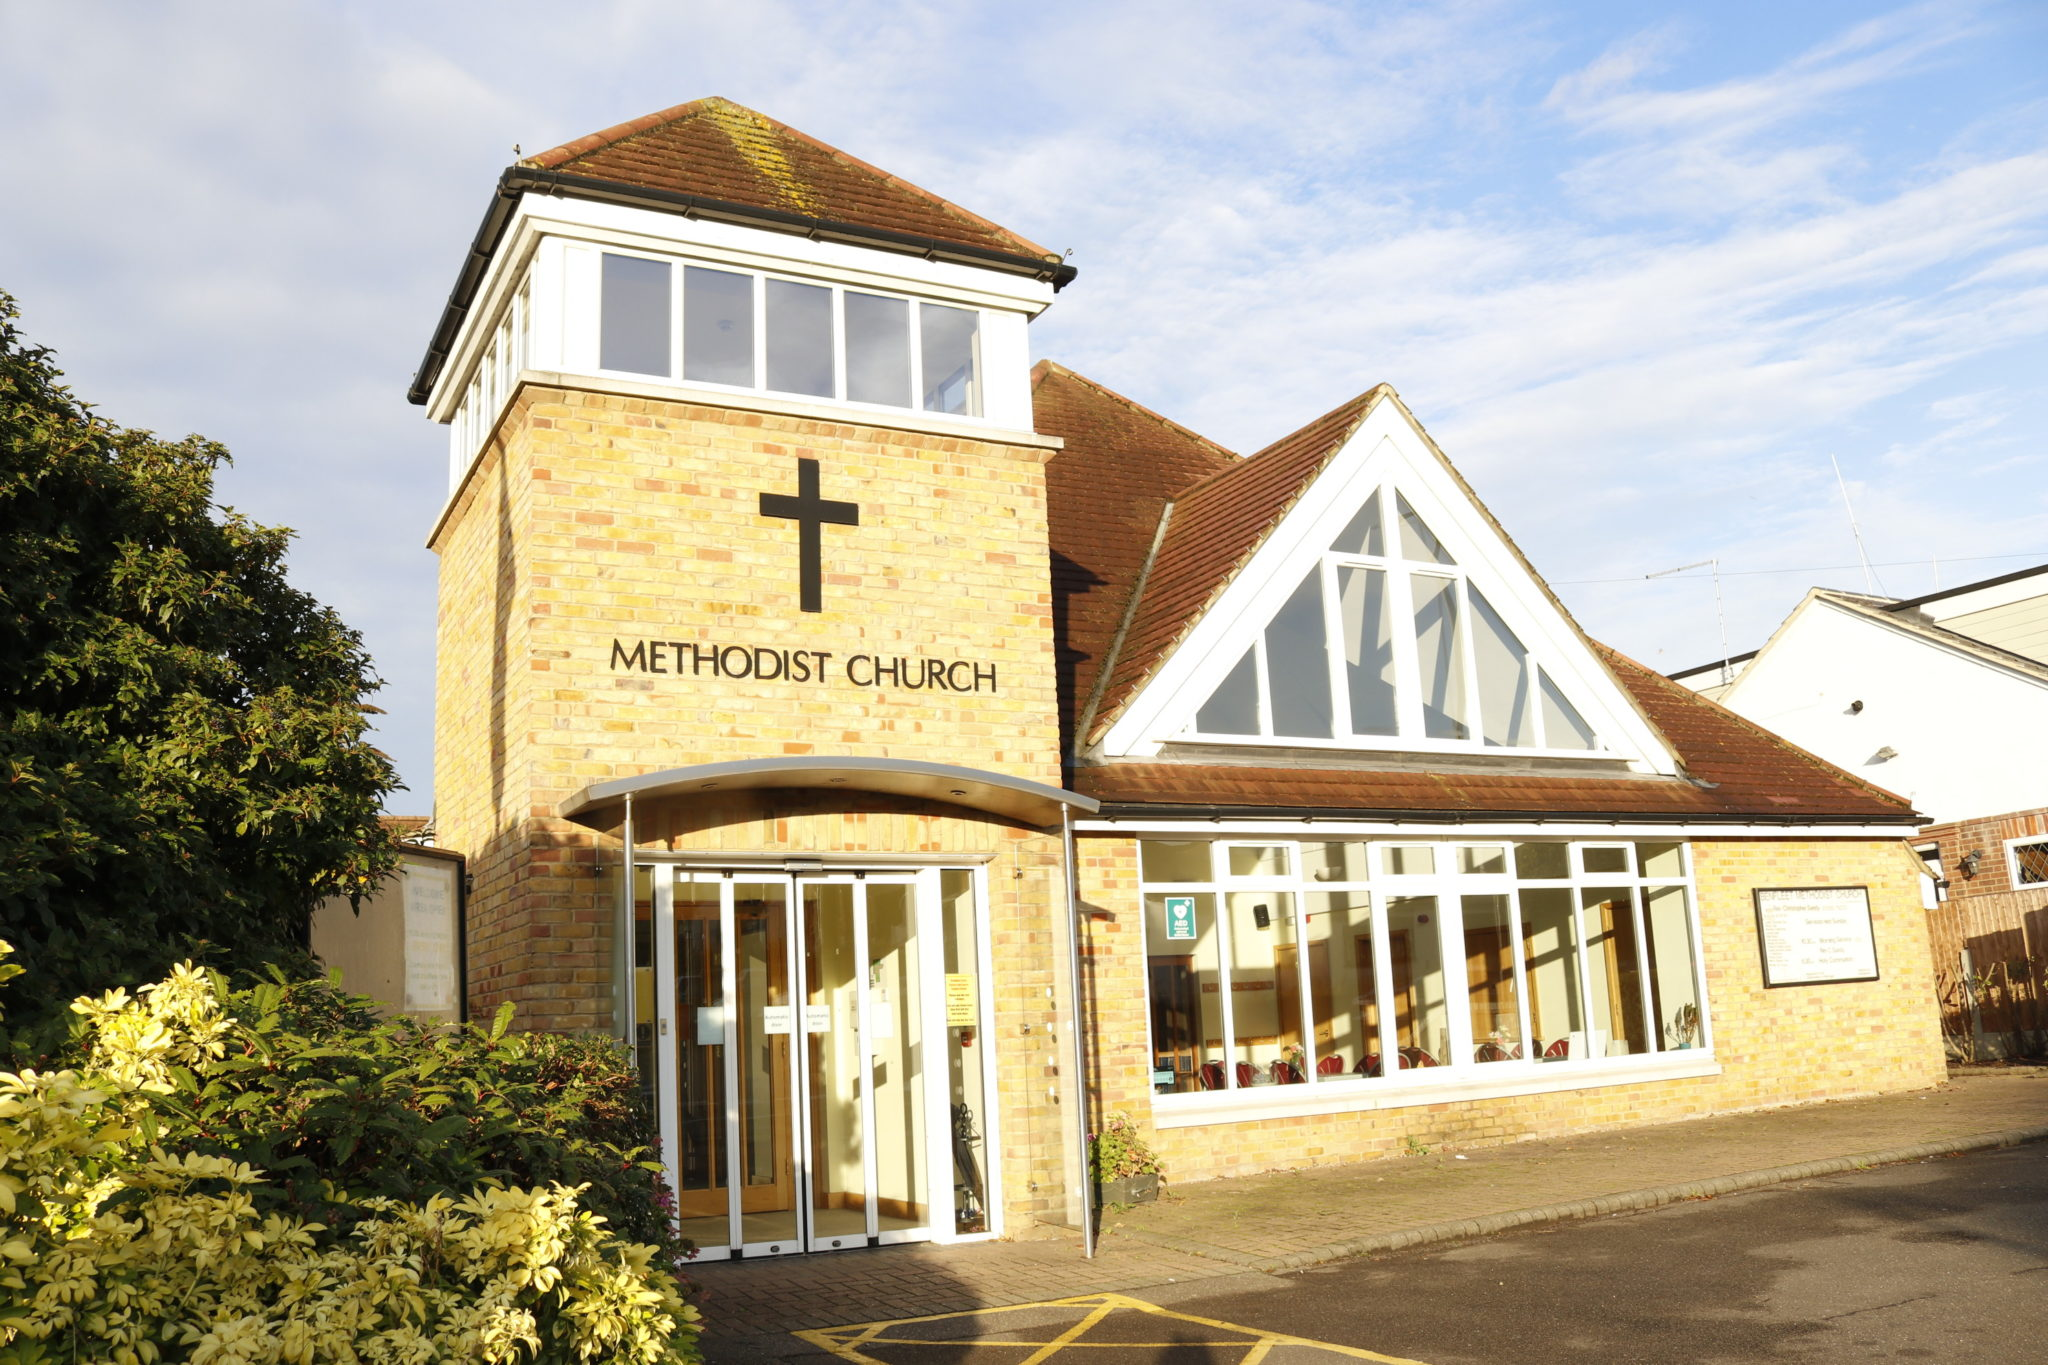 Benfleet Methodist Church - Today